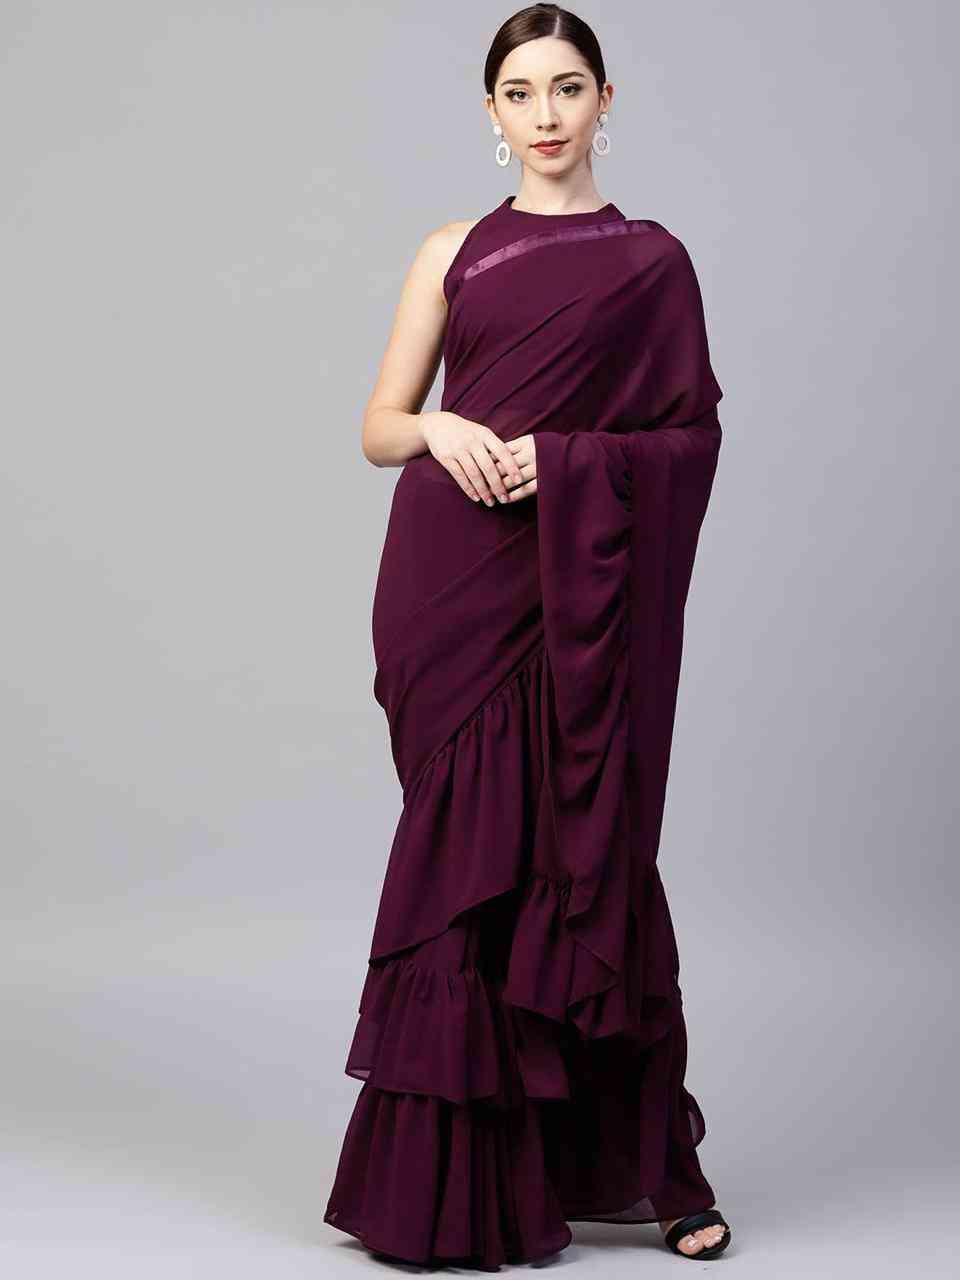 Excellent purple Colored Designer Georgette Solid Ruffle Saree